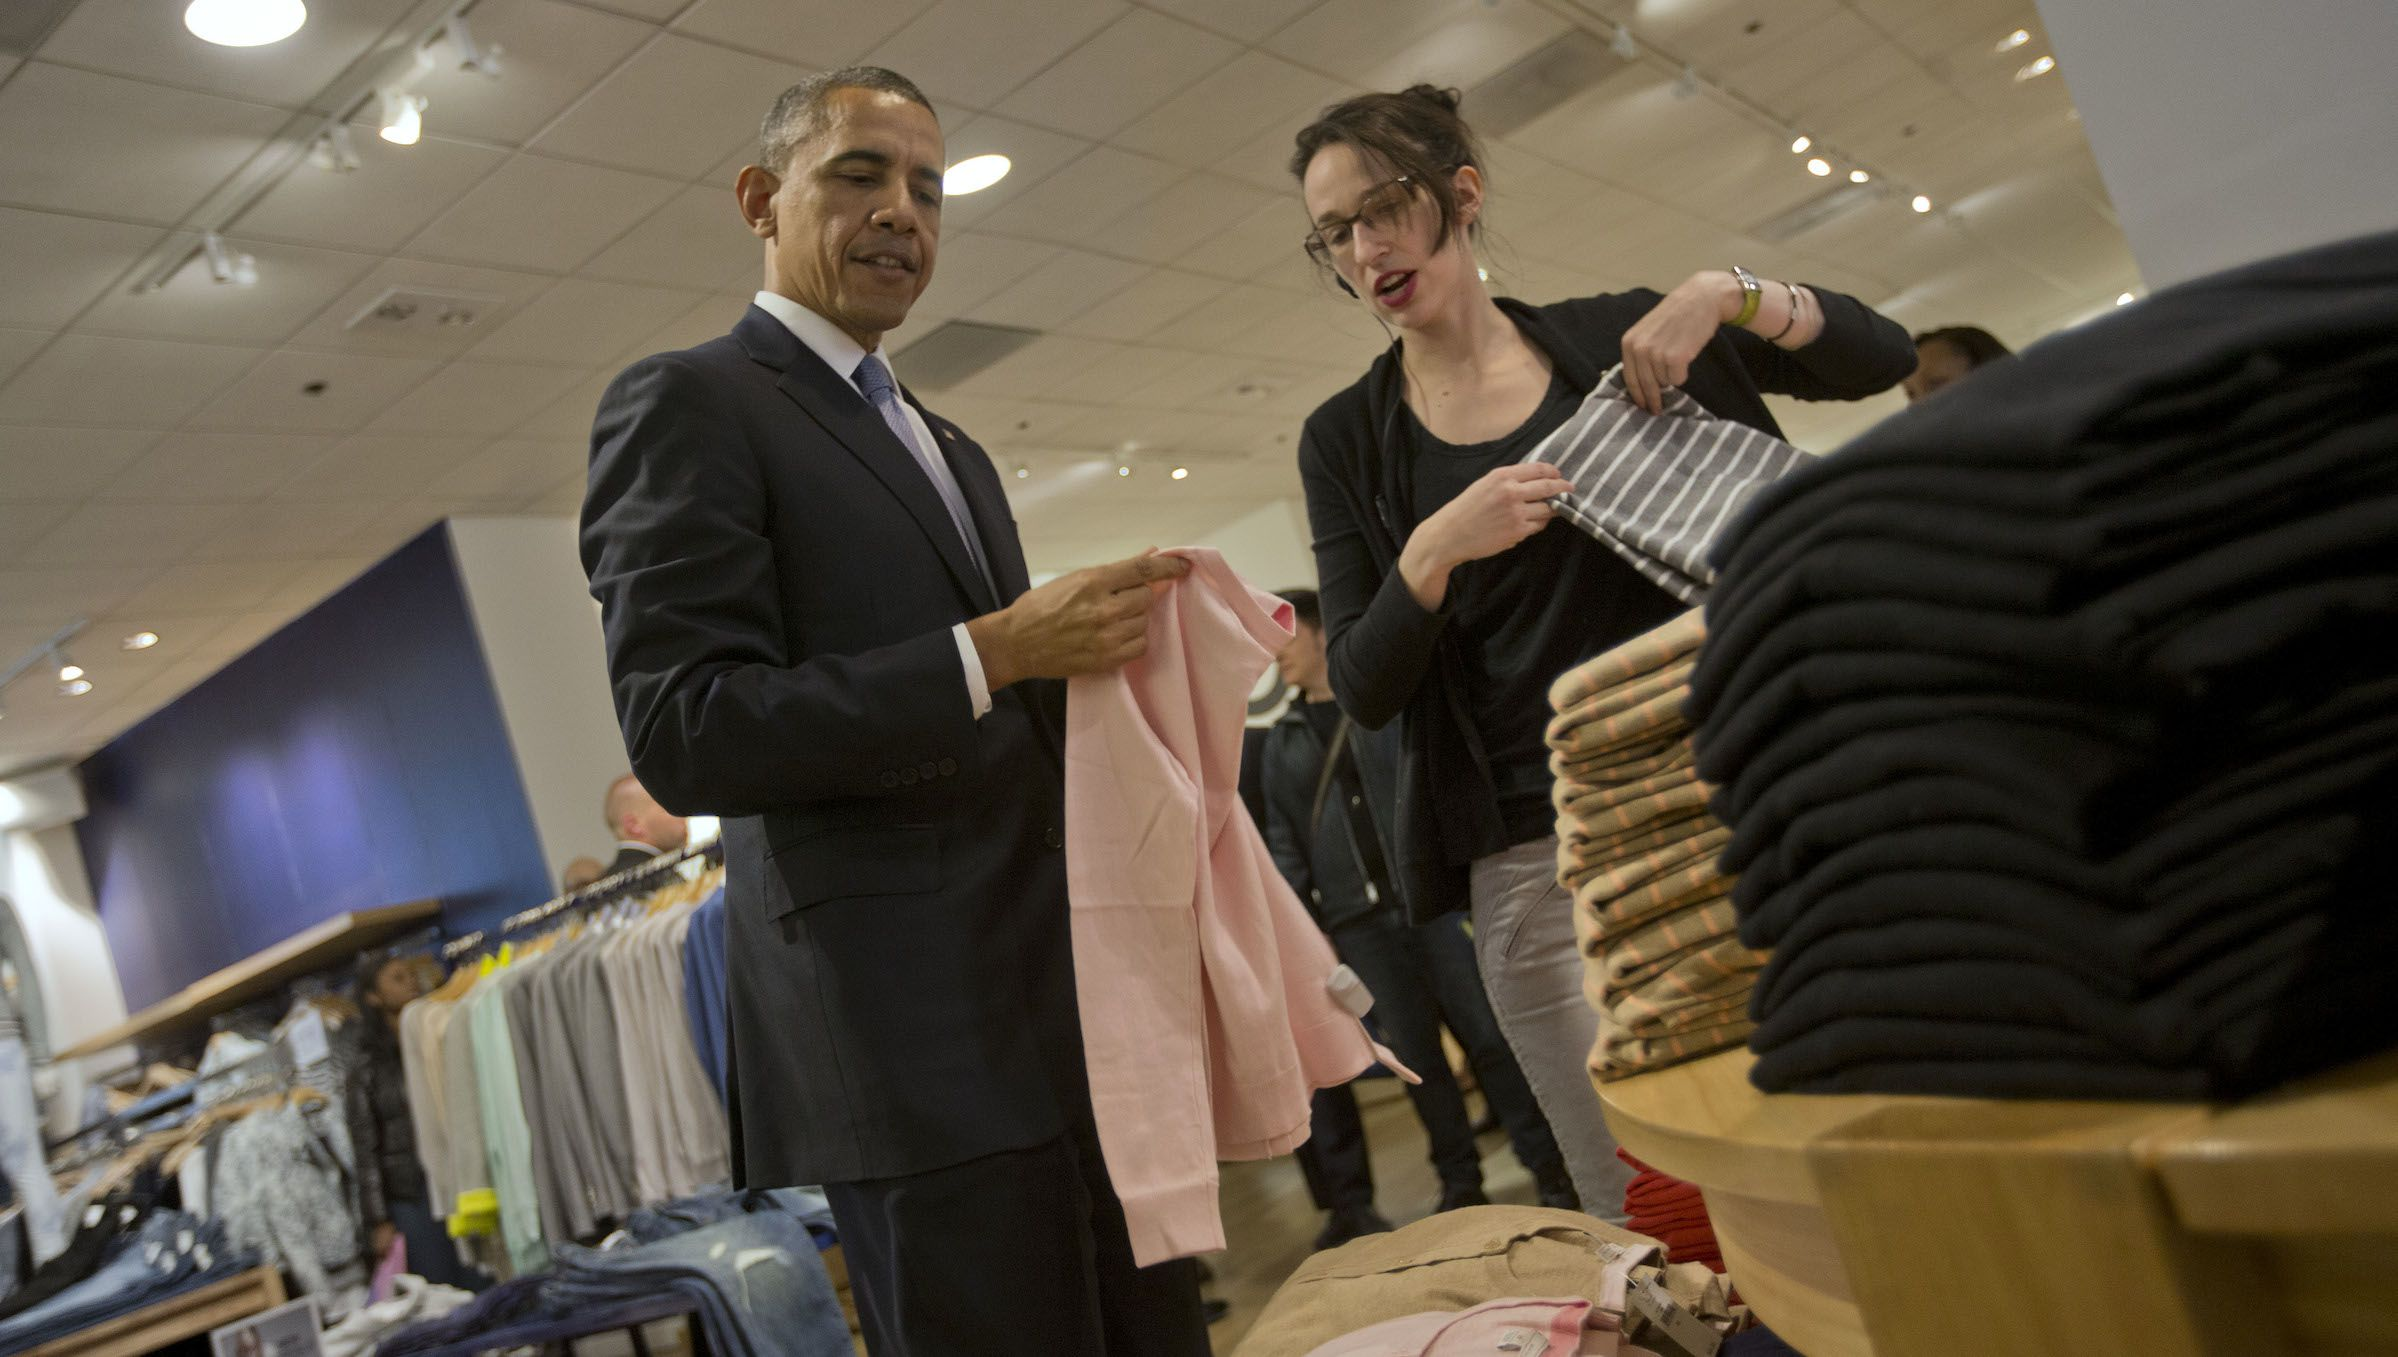 President Barack Obama, center, with the help of store employee Susan Panariello, shops for sweaters at GAP clothing store in Manhattan during his unannounced visit, Tuesday, March 11, 2014 in New York. Obama used the visit to talk about raising the minimum hourly wage standards and applauded the GAP, who earlier in the year announced it was raising minimum wage for its employees. (AP Photo/Pablo Martinez Monsivais)